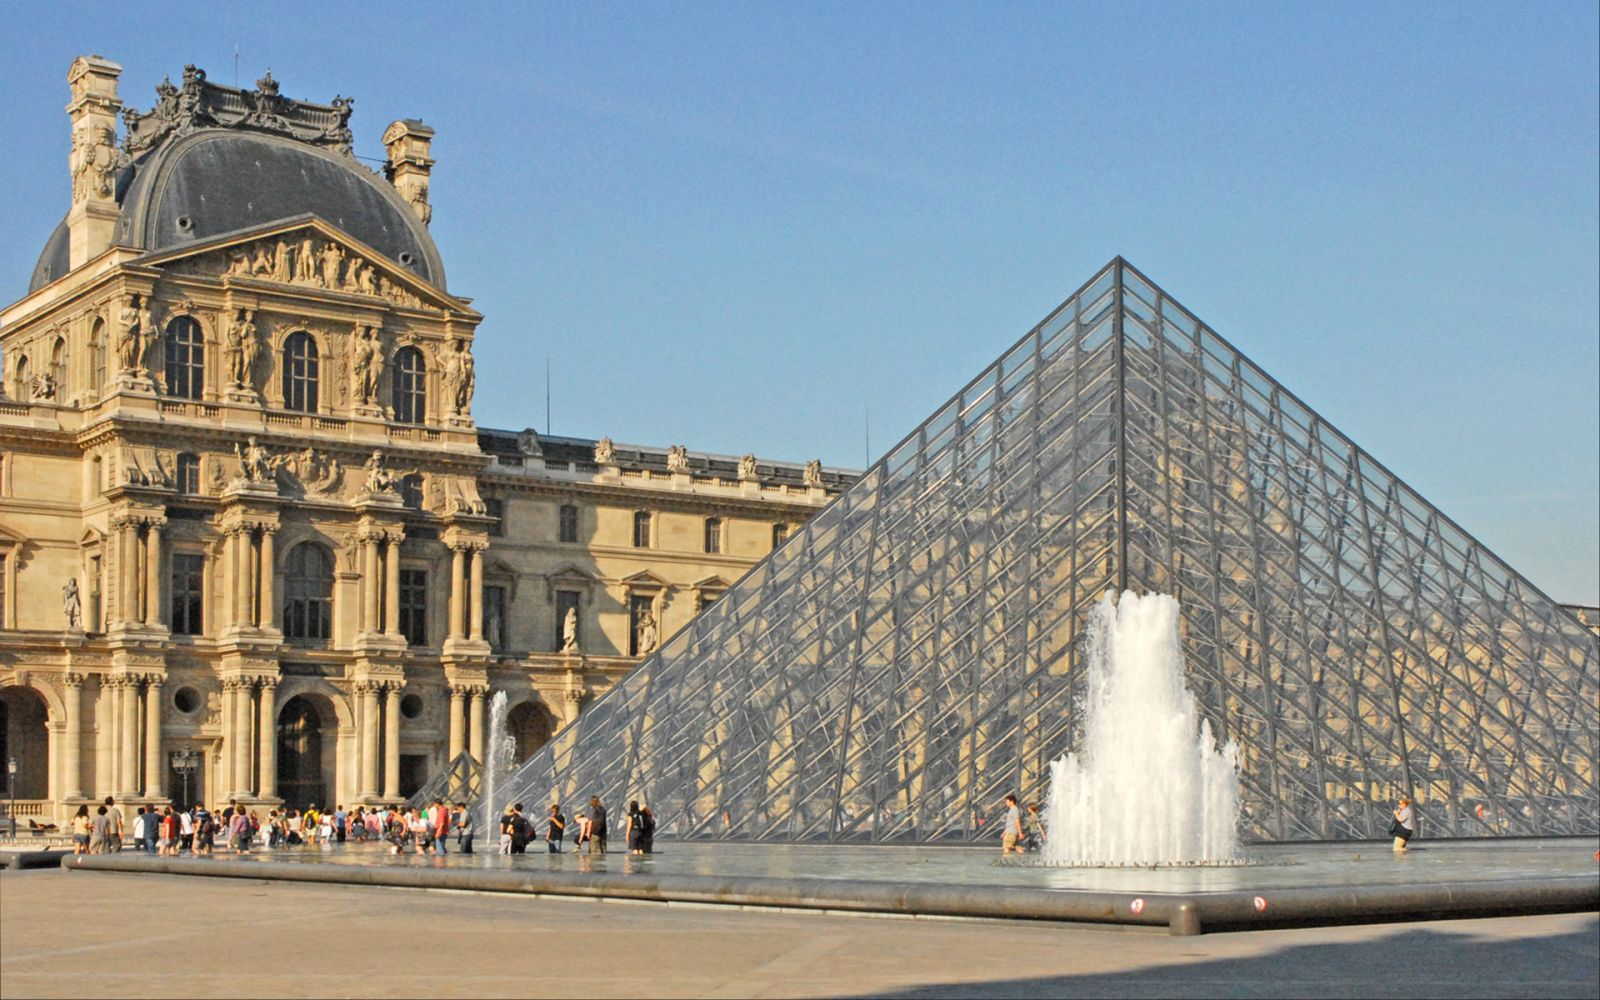 549/Photos/Paris/Le_musee_du_Louvre_4750261198-optimisee.jpg